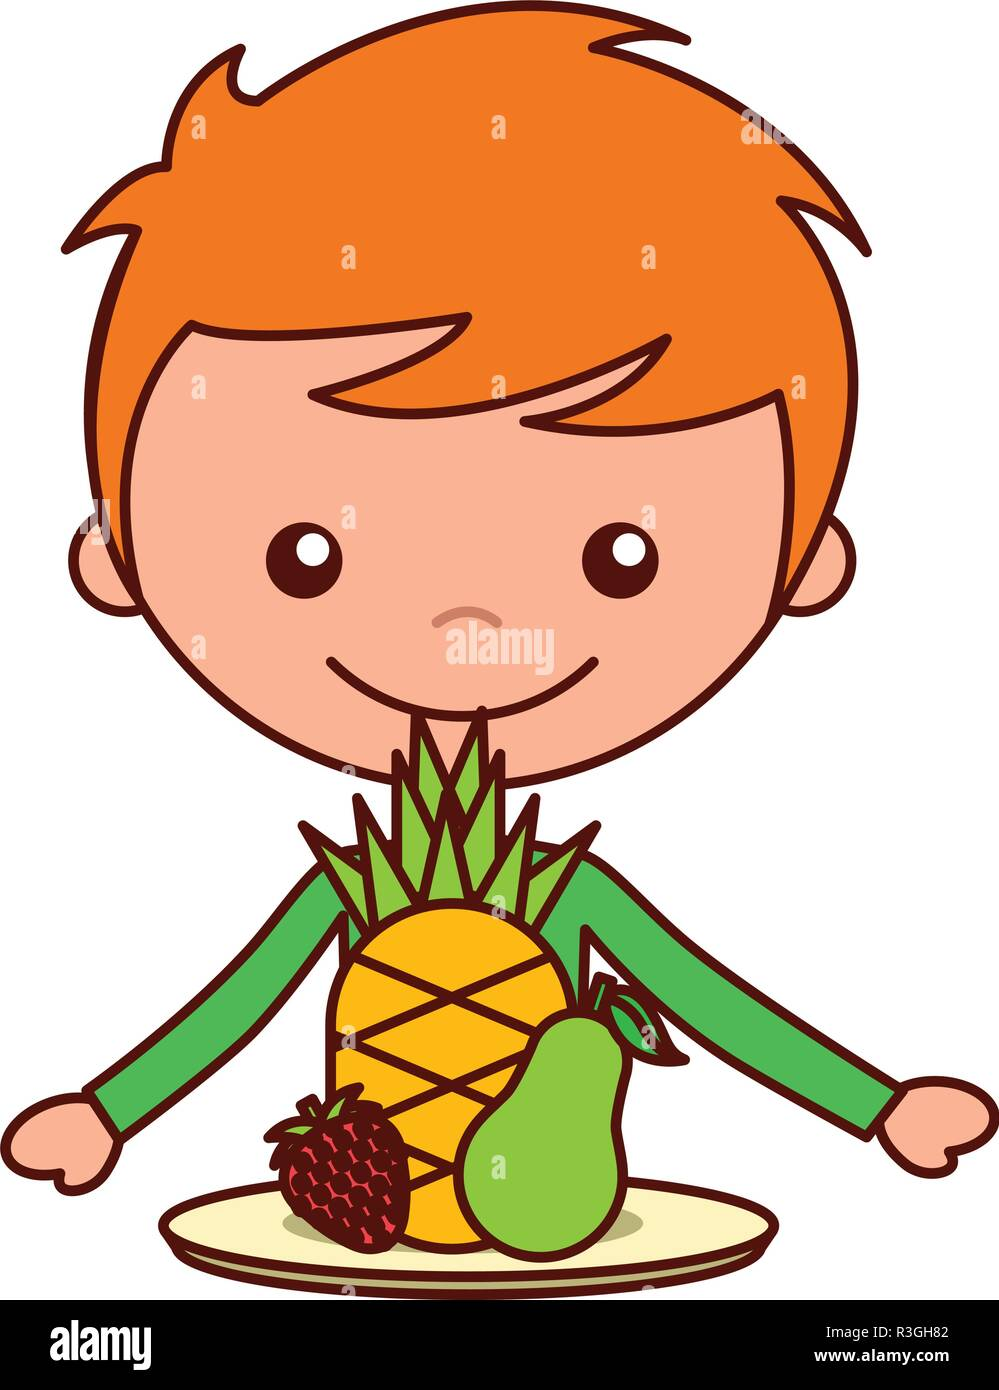 boy with pineapple pear and strawberry - Stock Vector